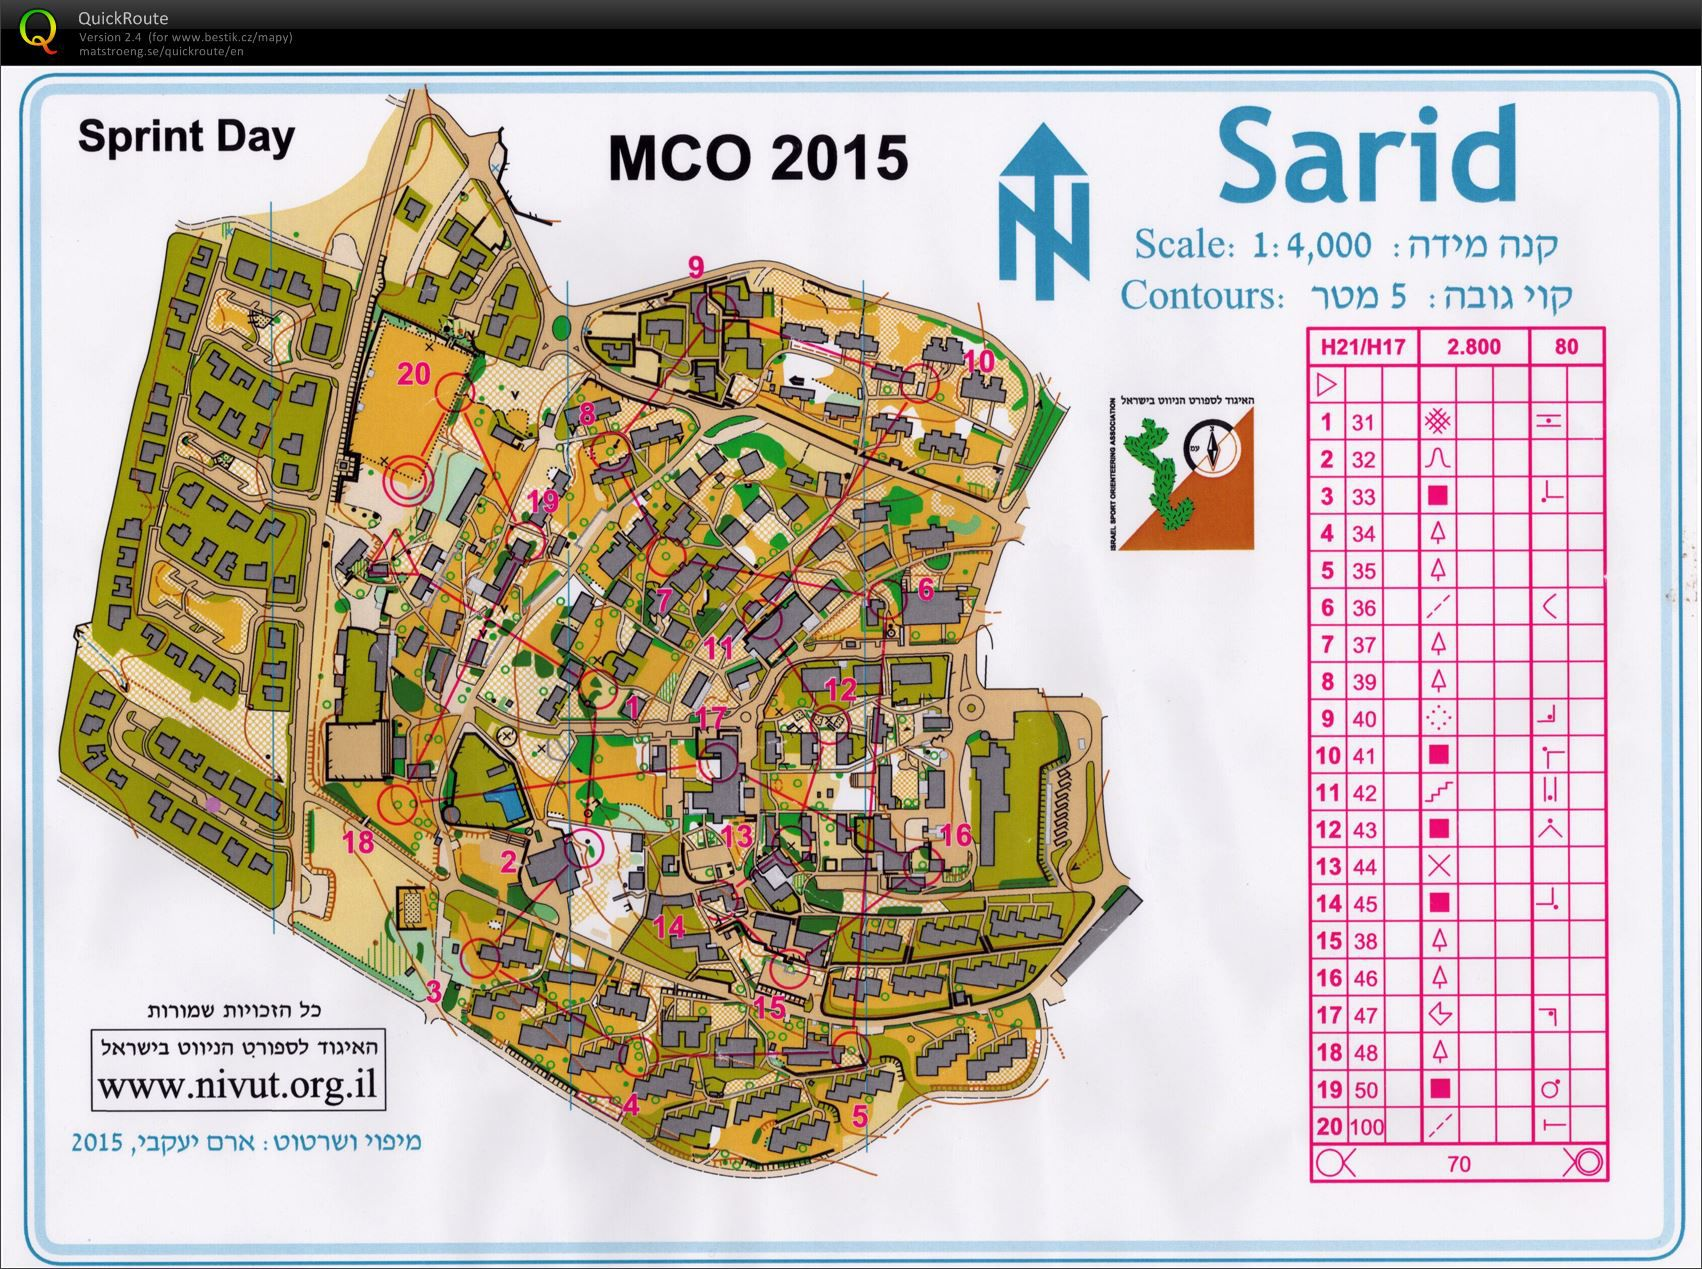 MCO Israel Open 2015 (19.02.2015)